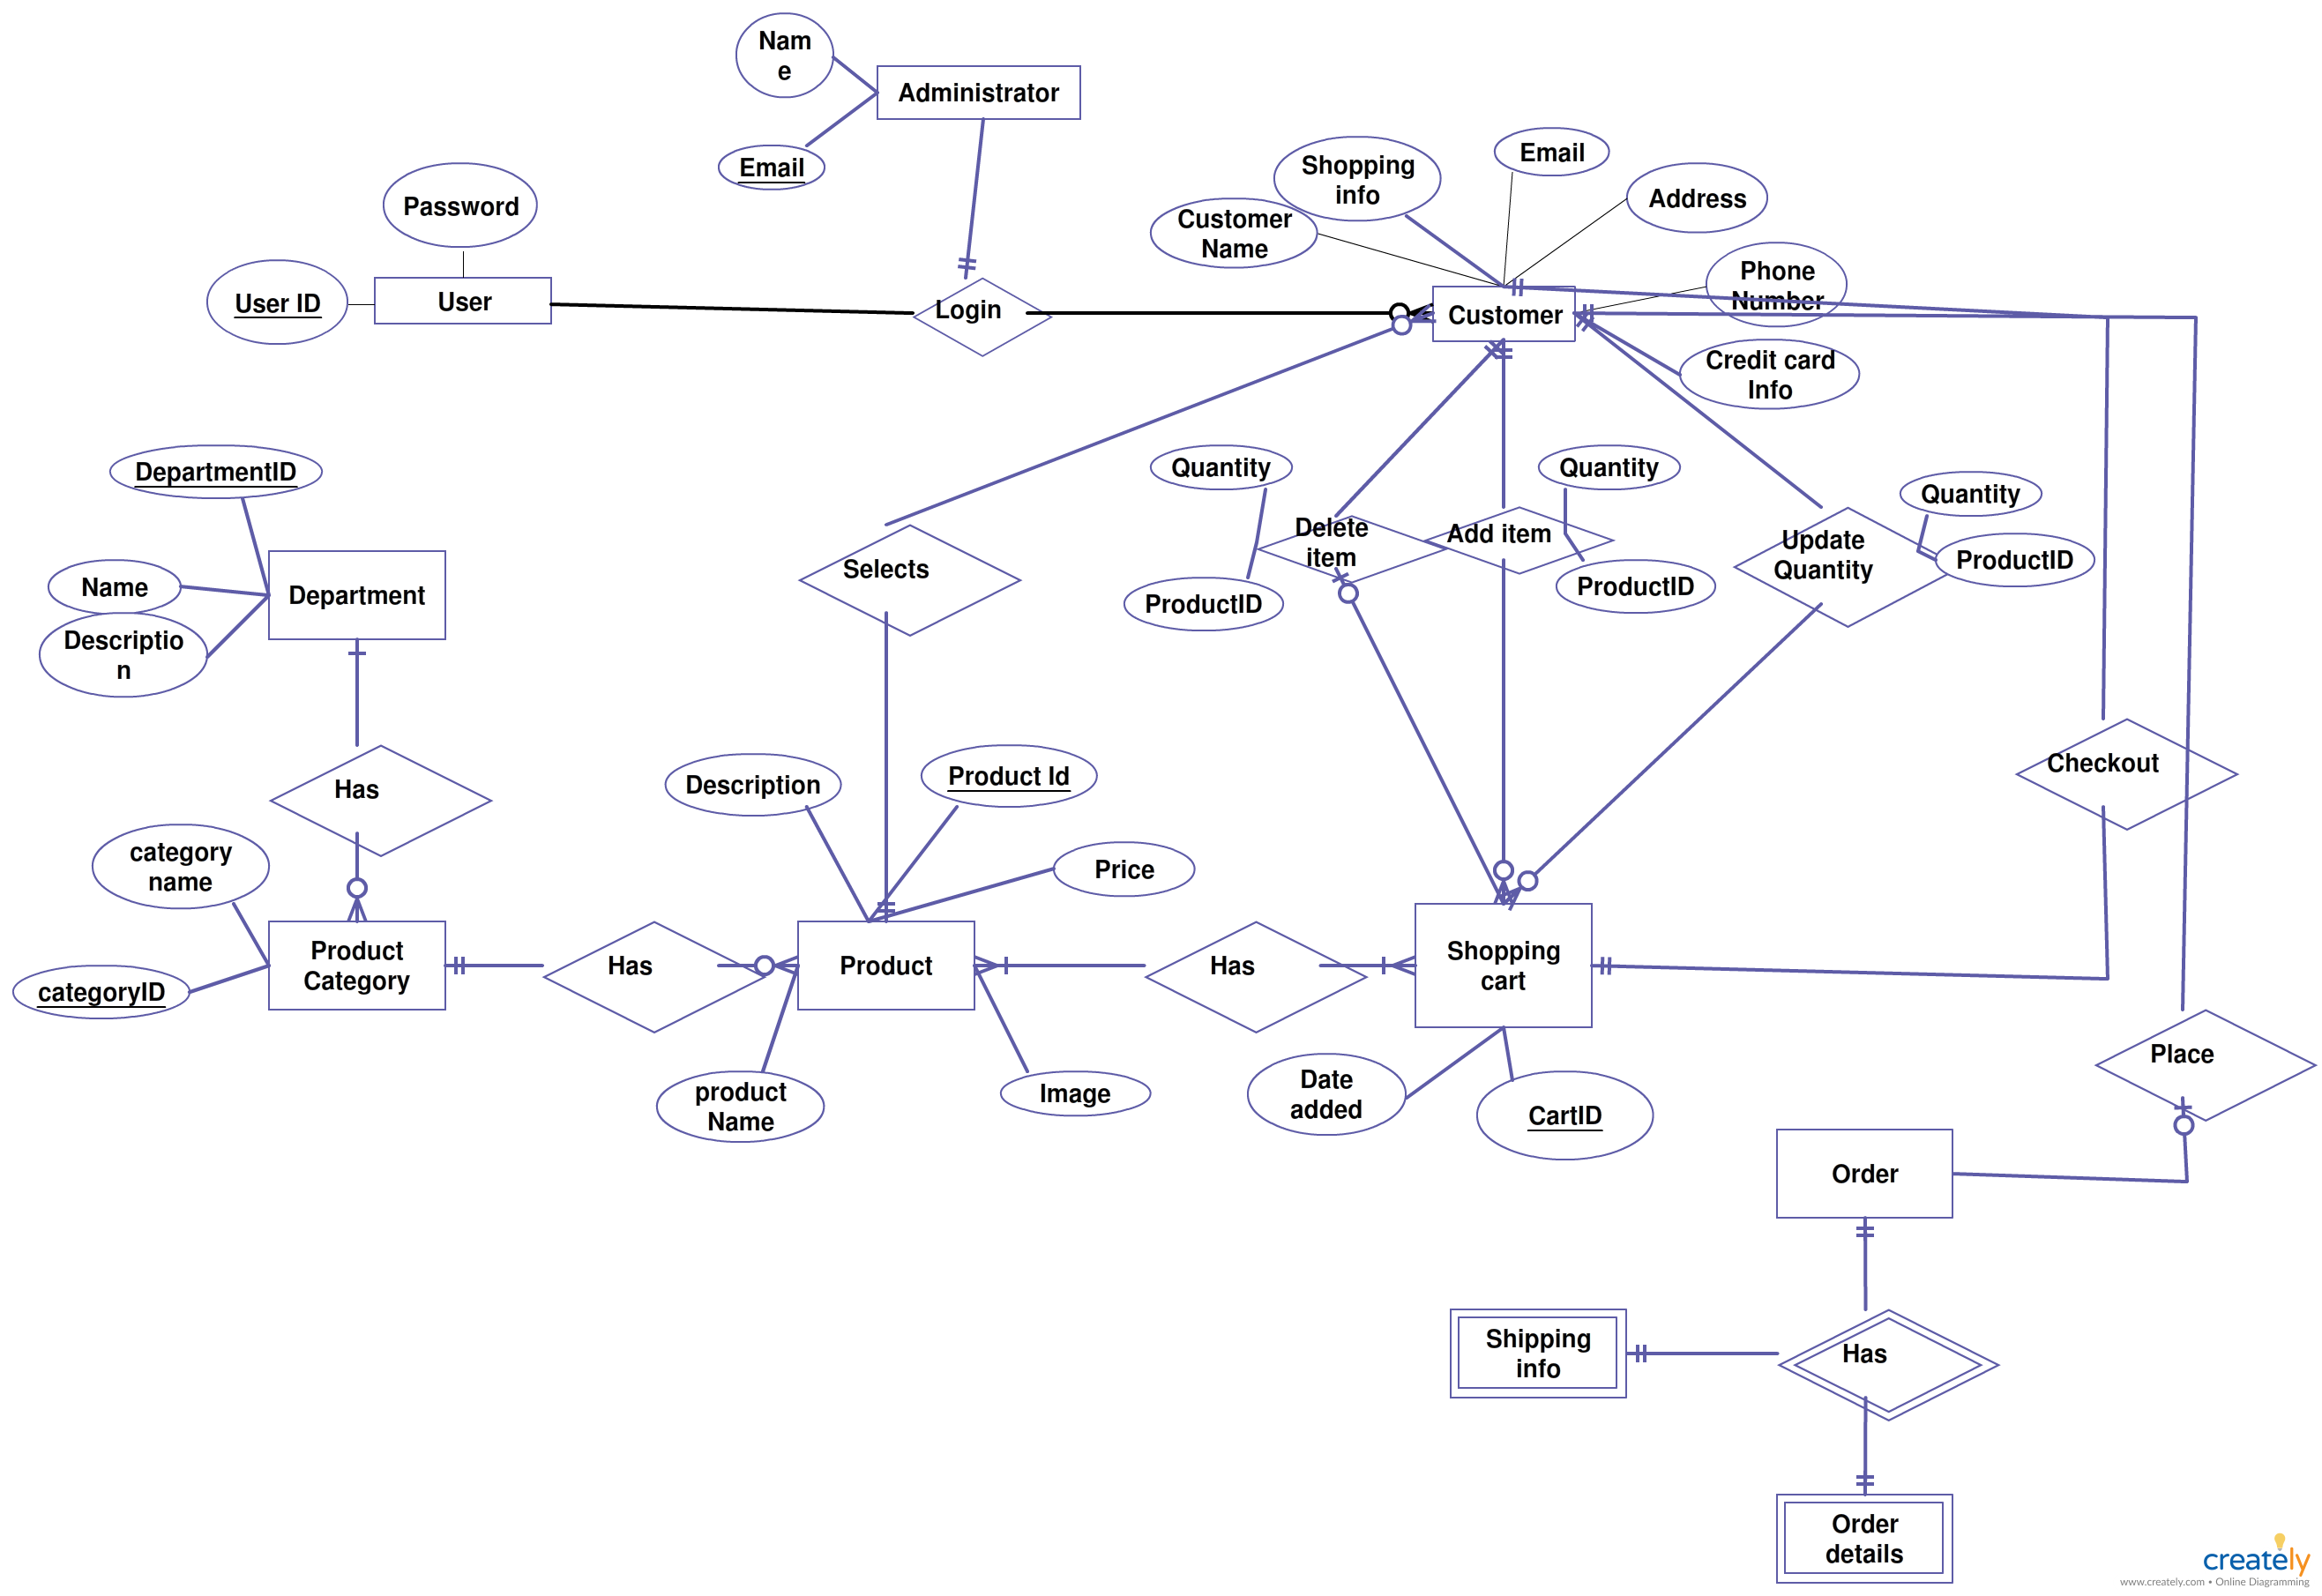 Er Diagrams Help Us To Visualize How Data Is Connected In A